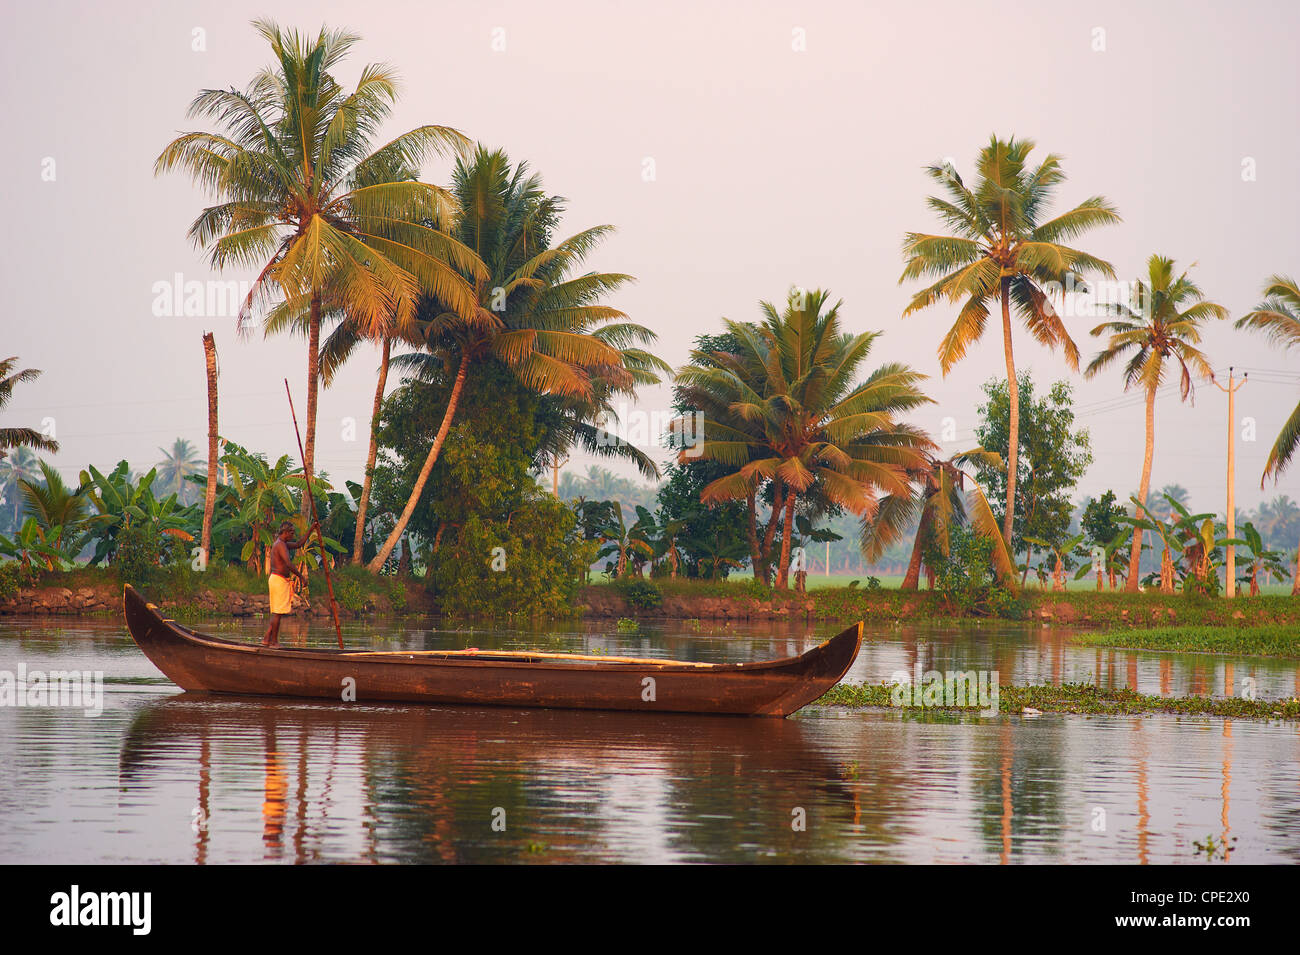 Boat on the backwaters, Allepey, Kerala, India, Asia - Stock Image